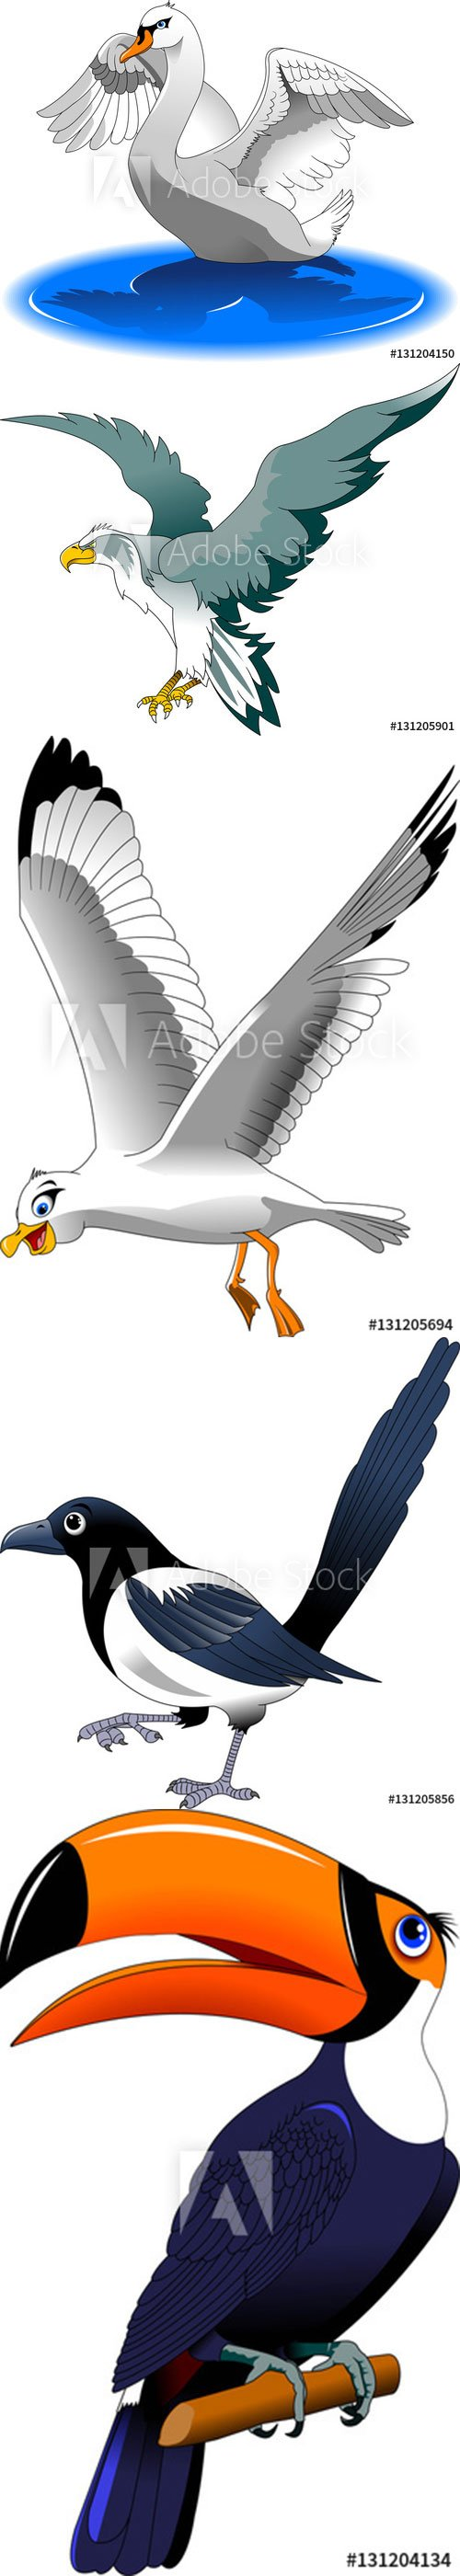 Collection of beautiful birds in a vector and illustration